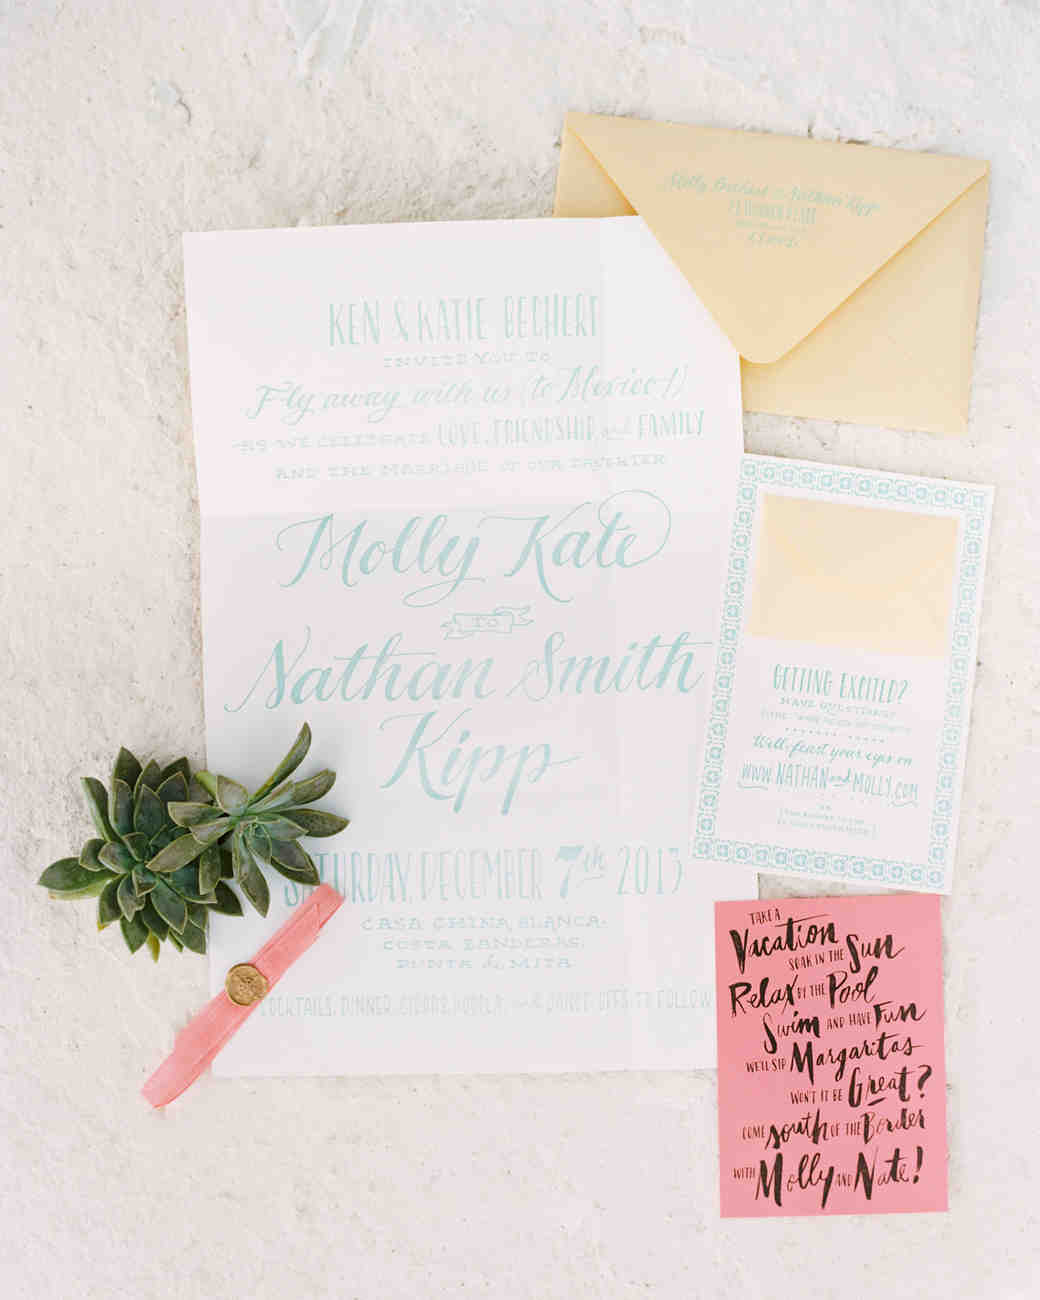 molly-nate-wedding-invite-007-s111479-0814.jpg